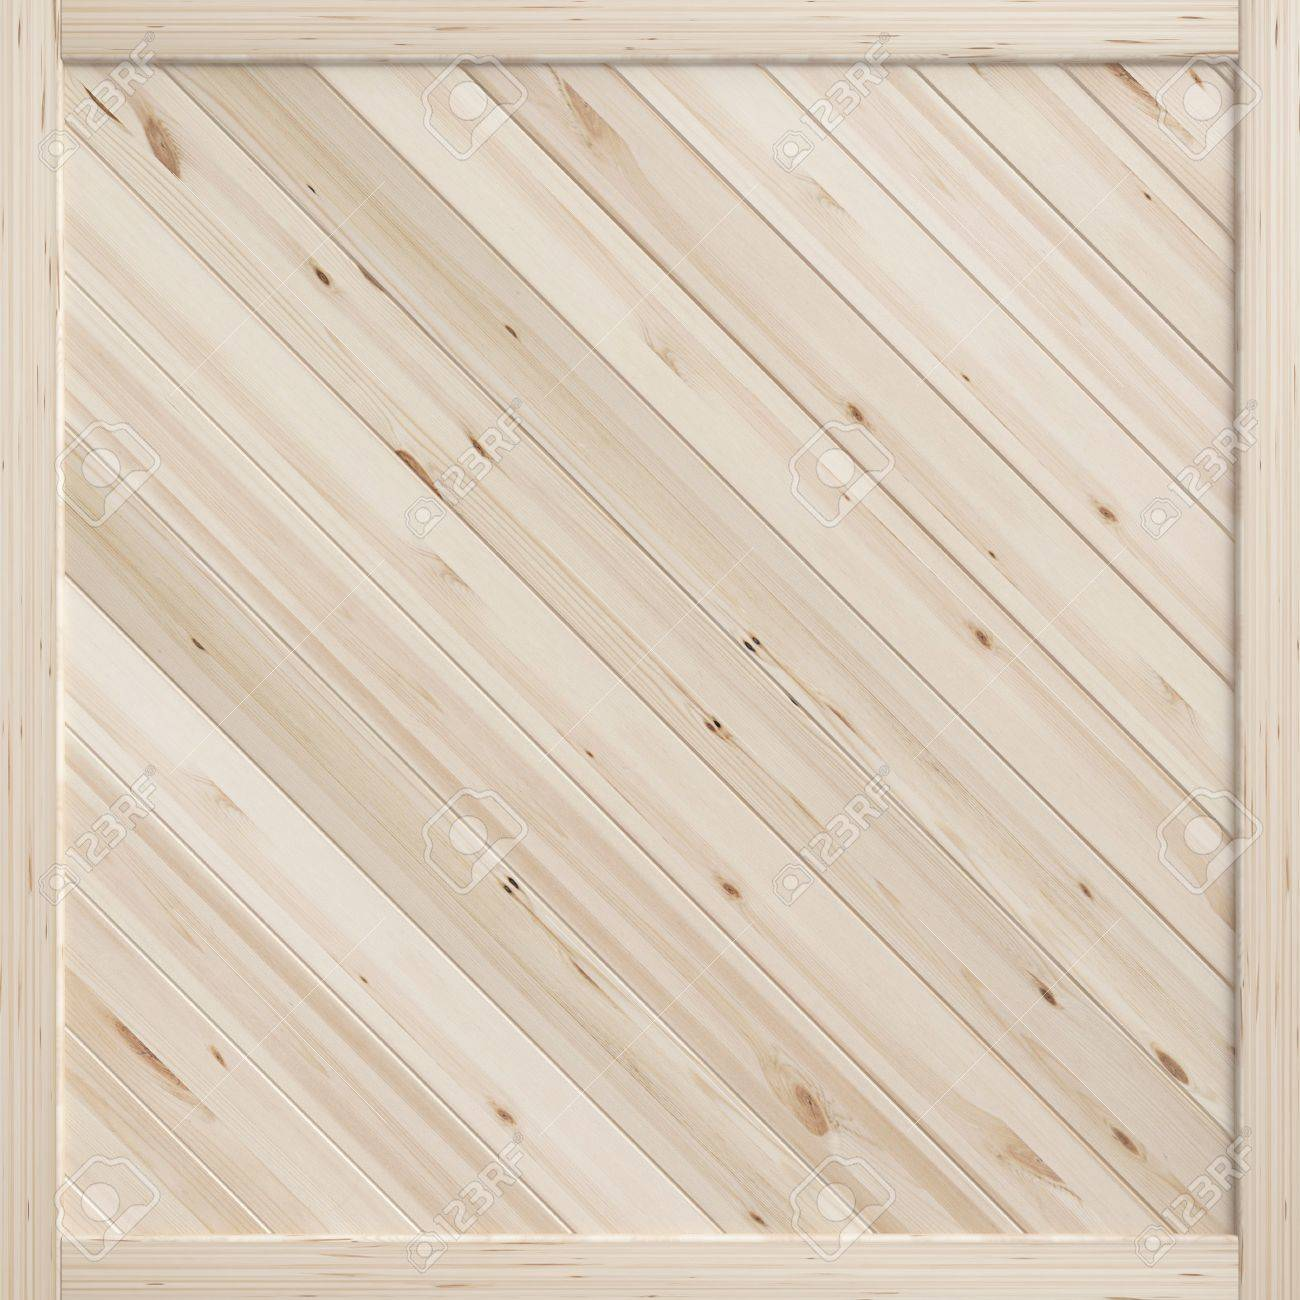 new brown wooden boards texture Stock Photo - 19434440